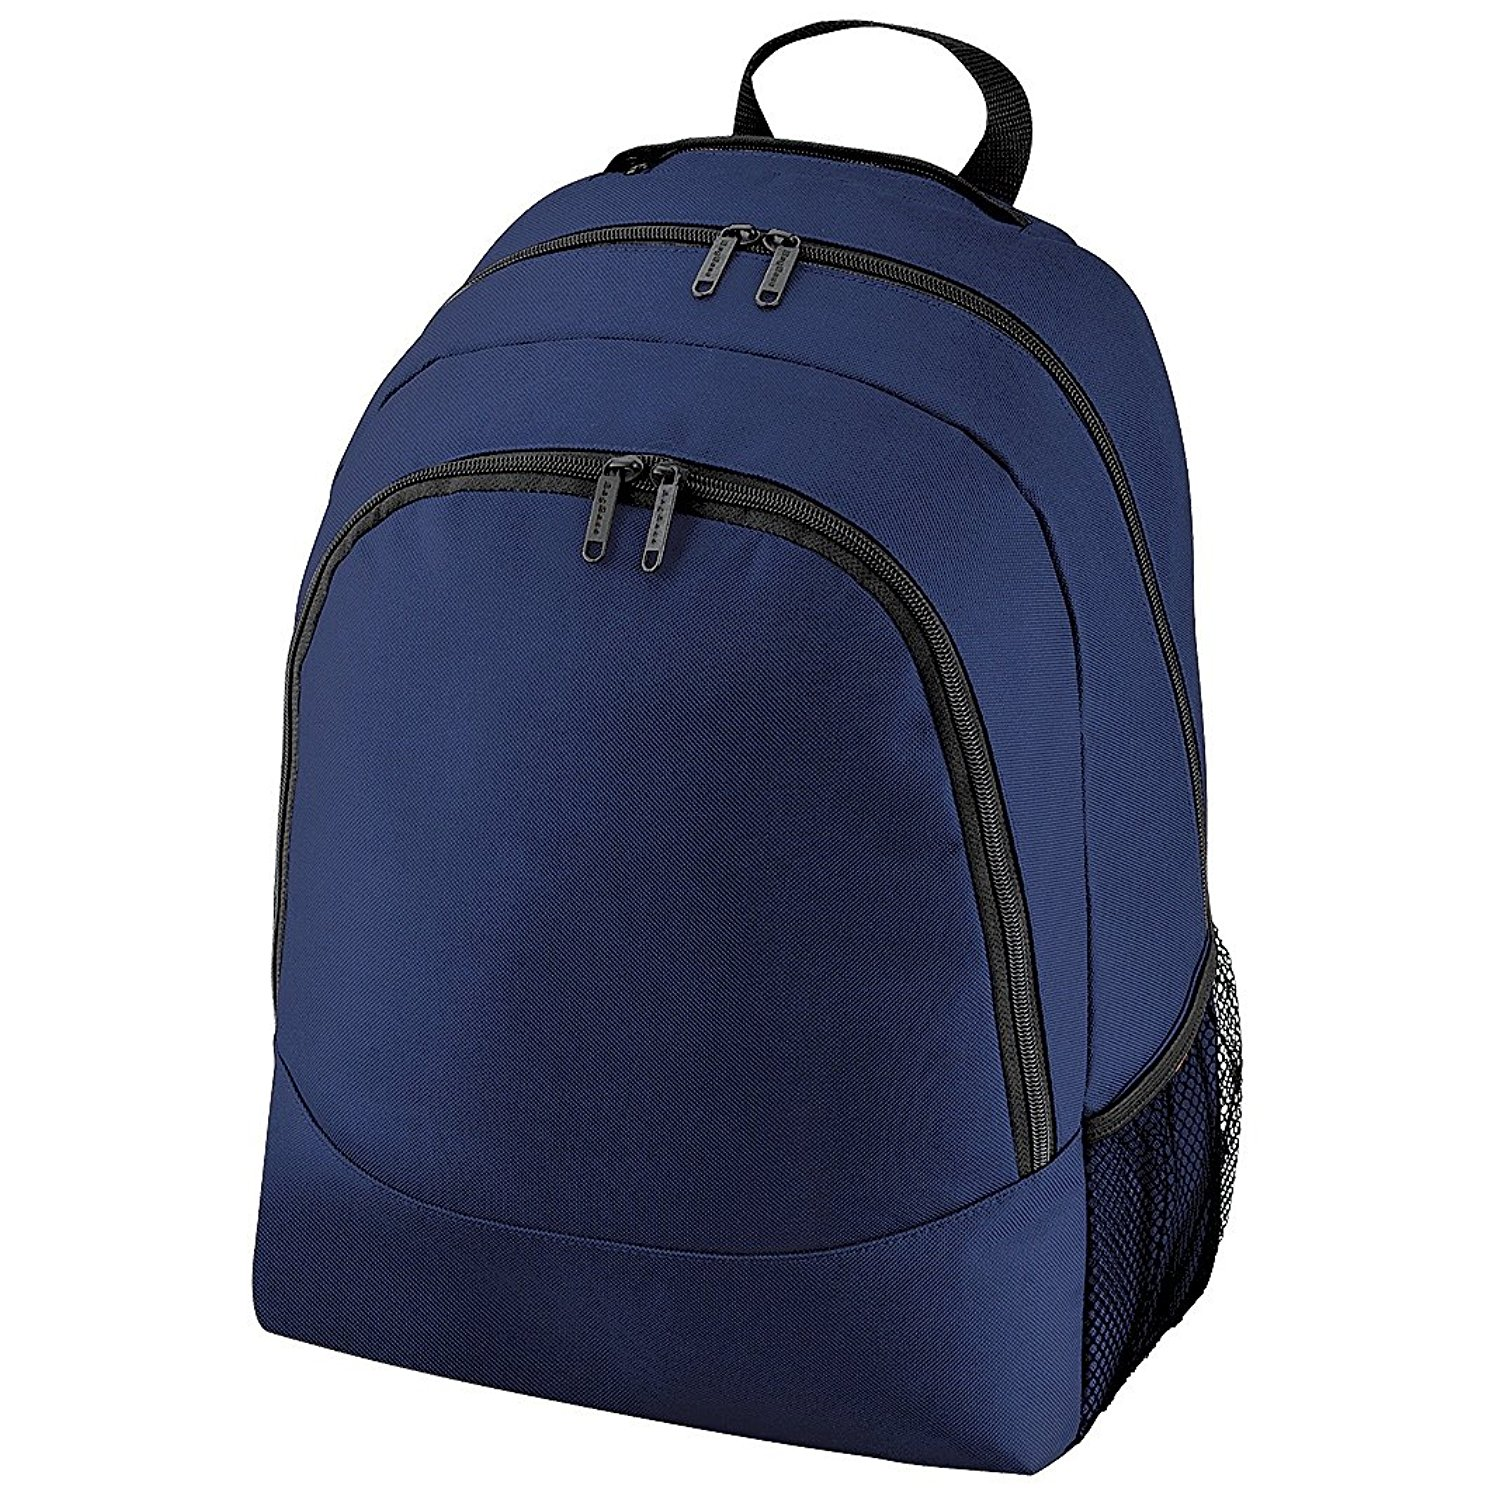 Cheap fashion backpacks uk 6